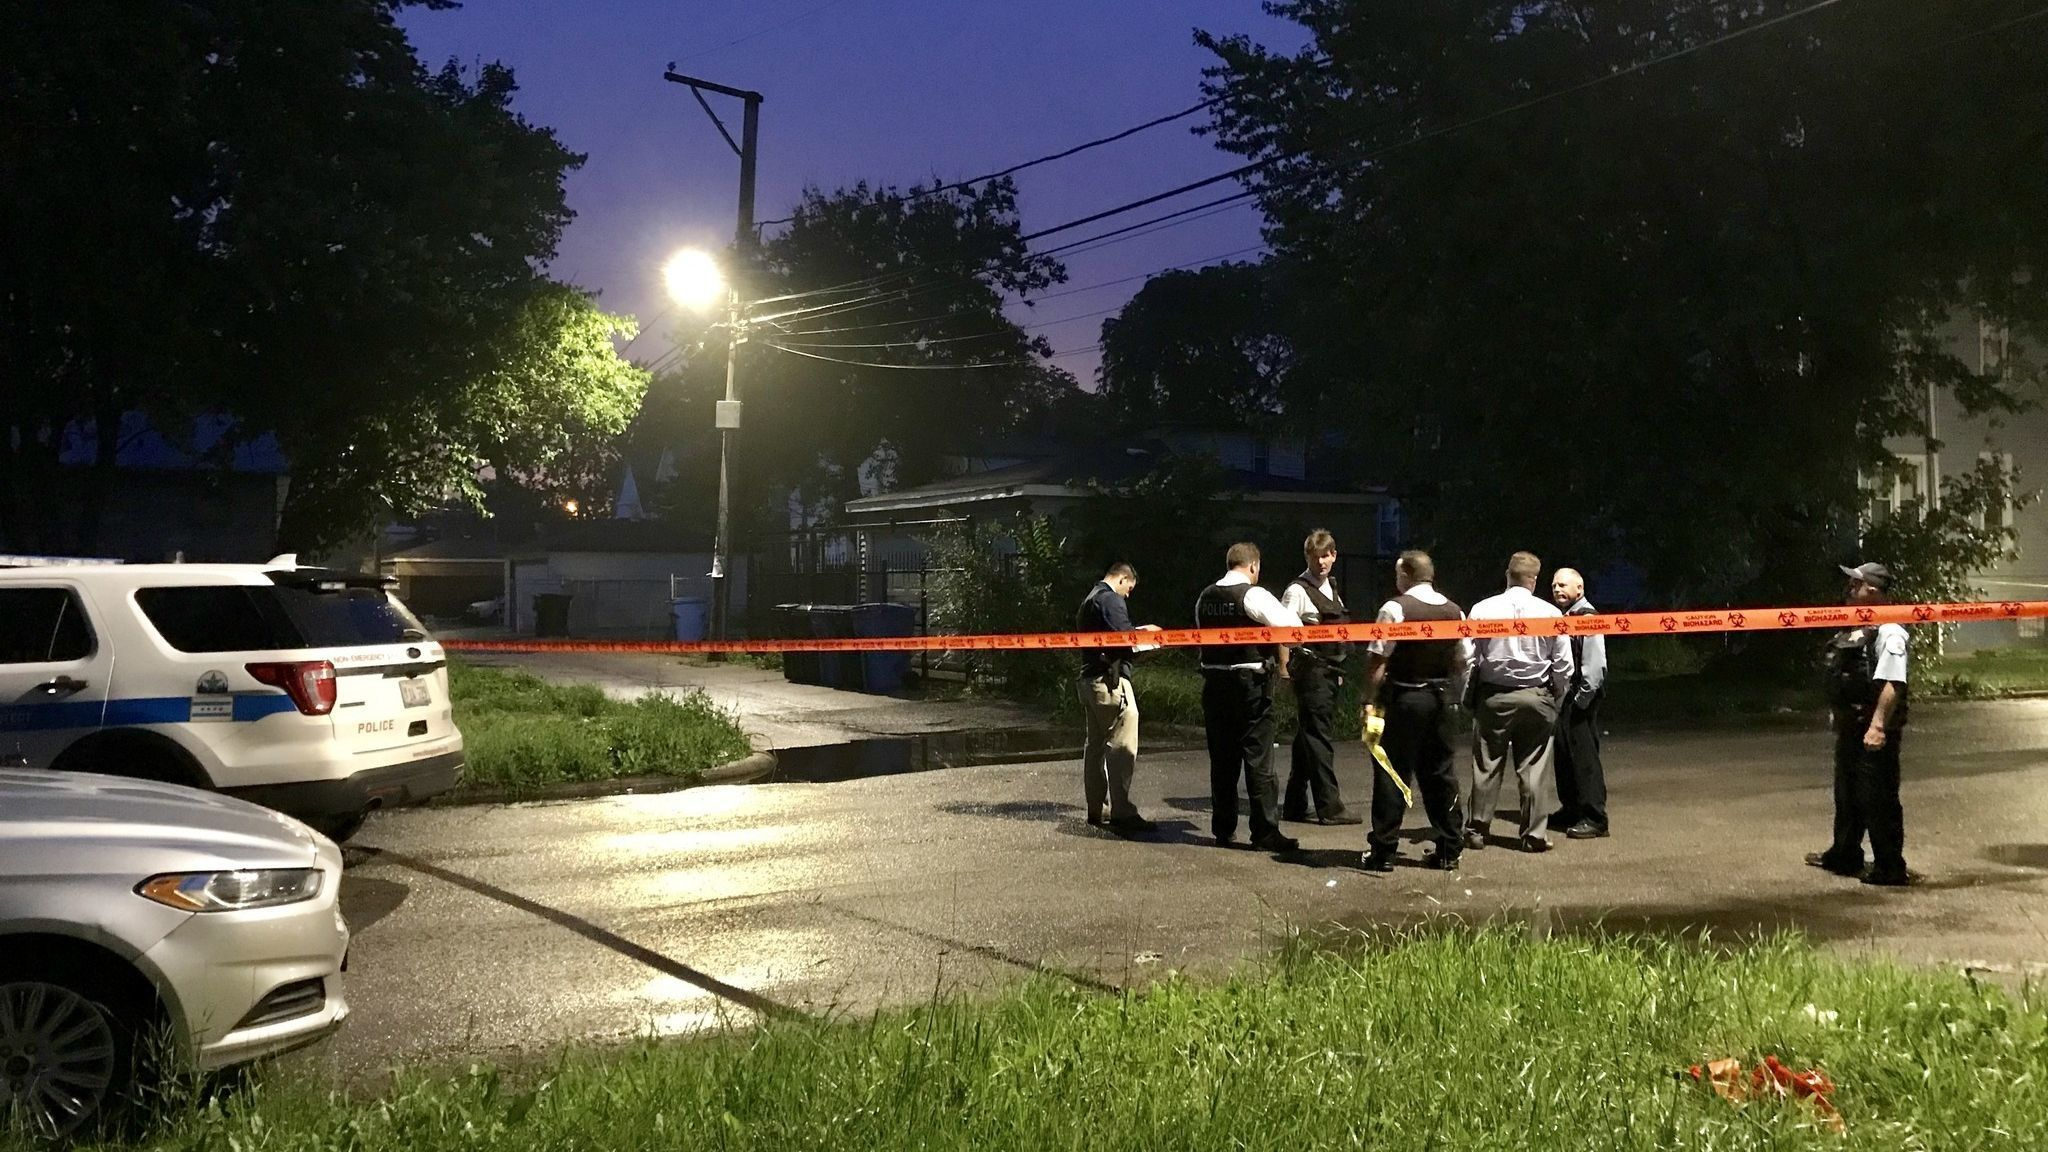 Simeon freshman, 15, killed in West Englewood shooting: 'He was a baby, and they took him'